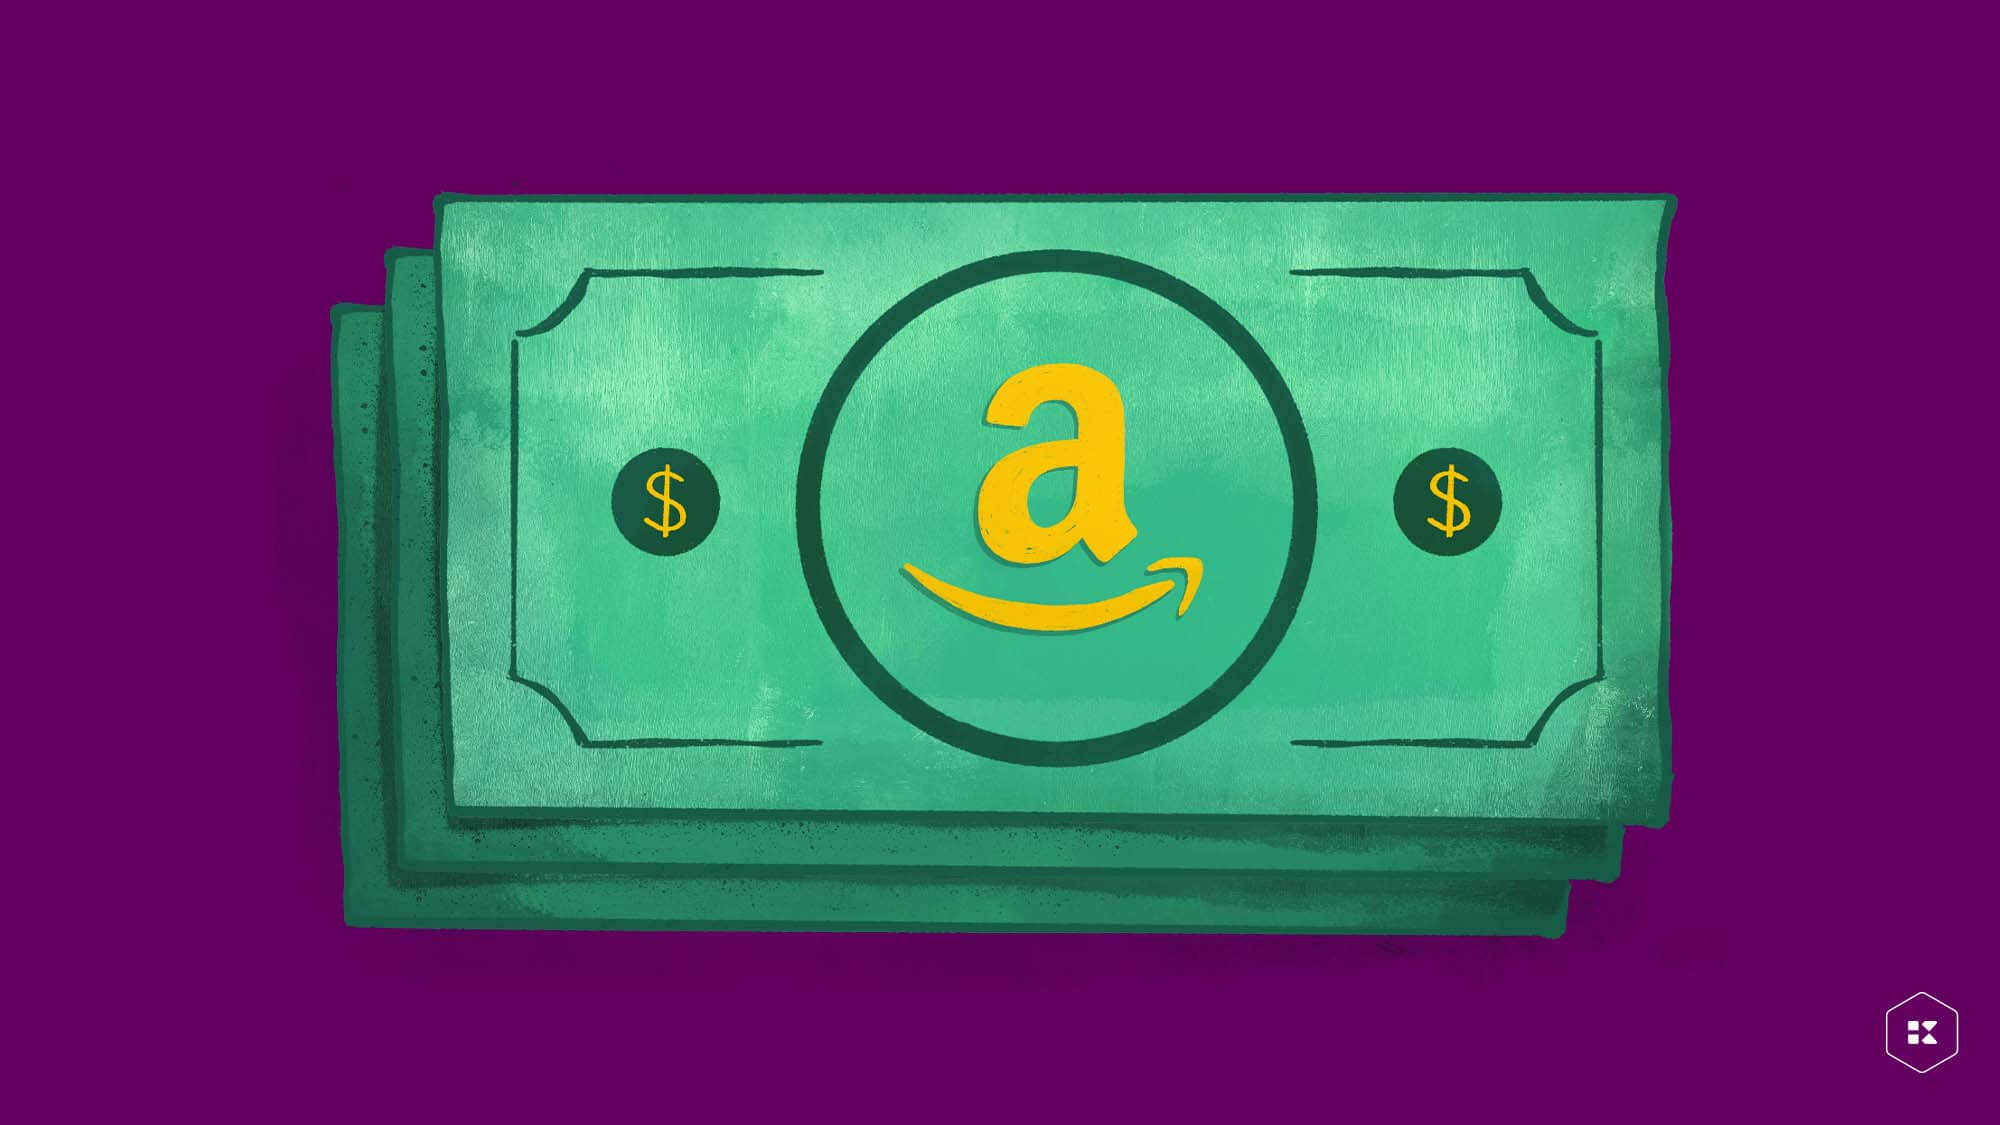 Dollar with Amazon logo for Amazon's pricing policy